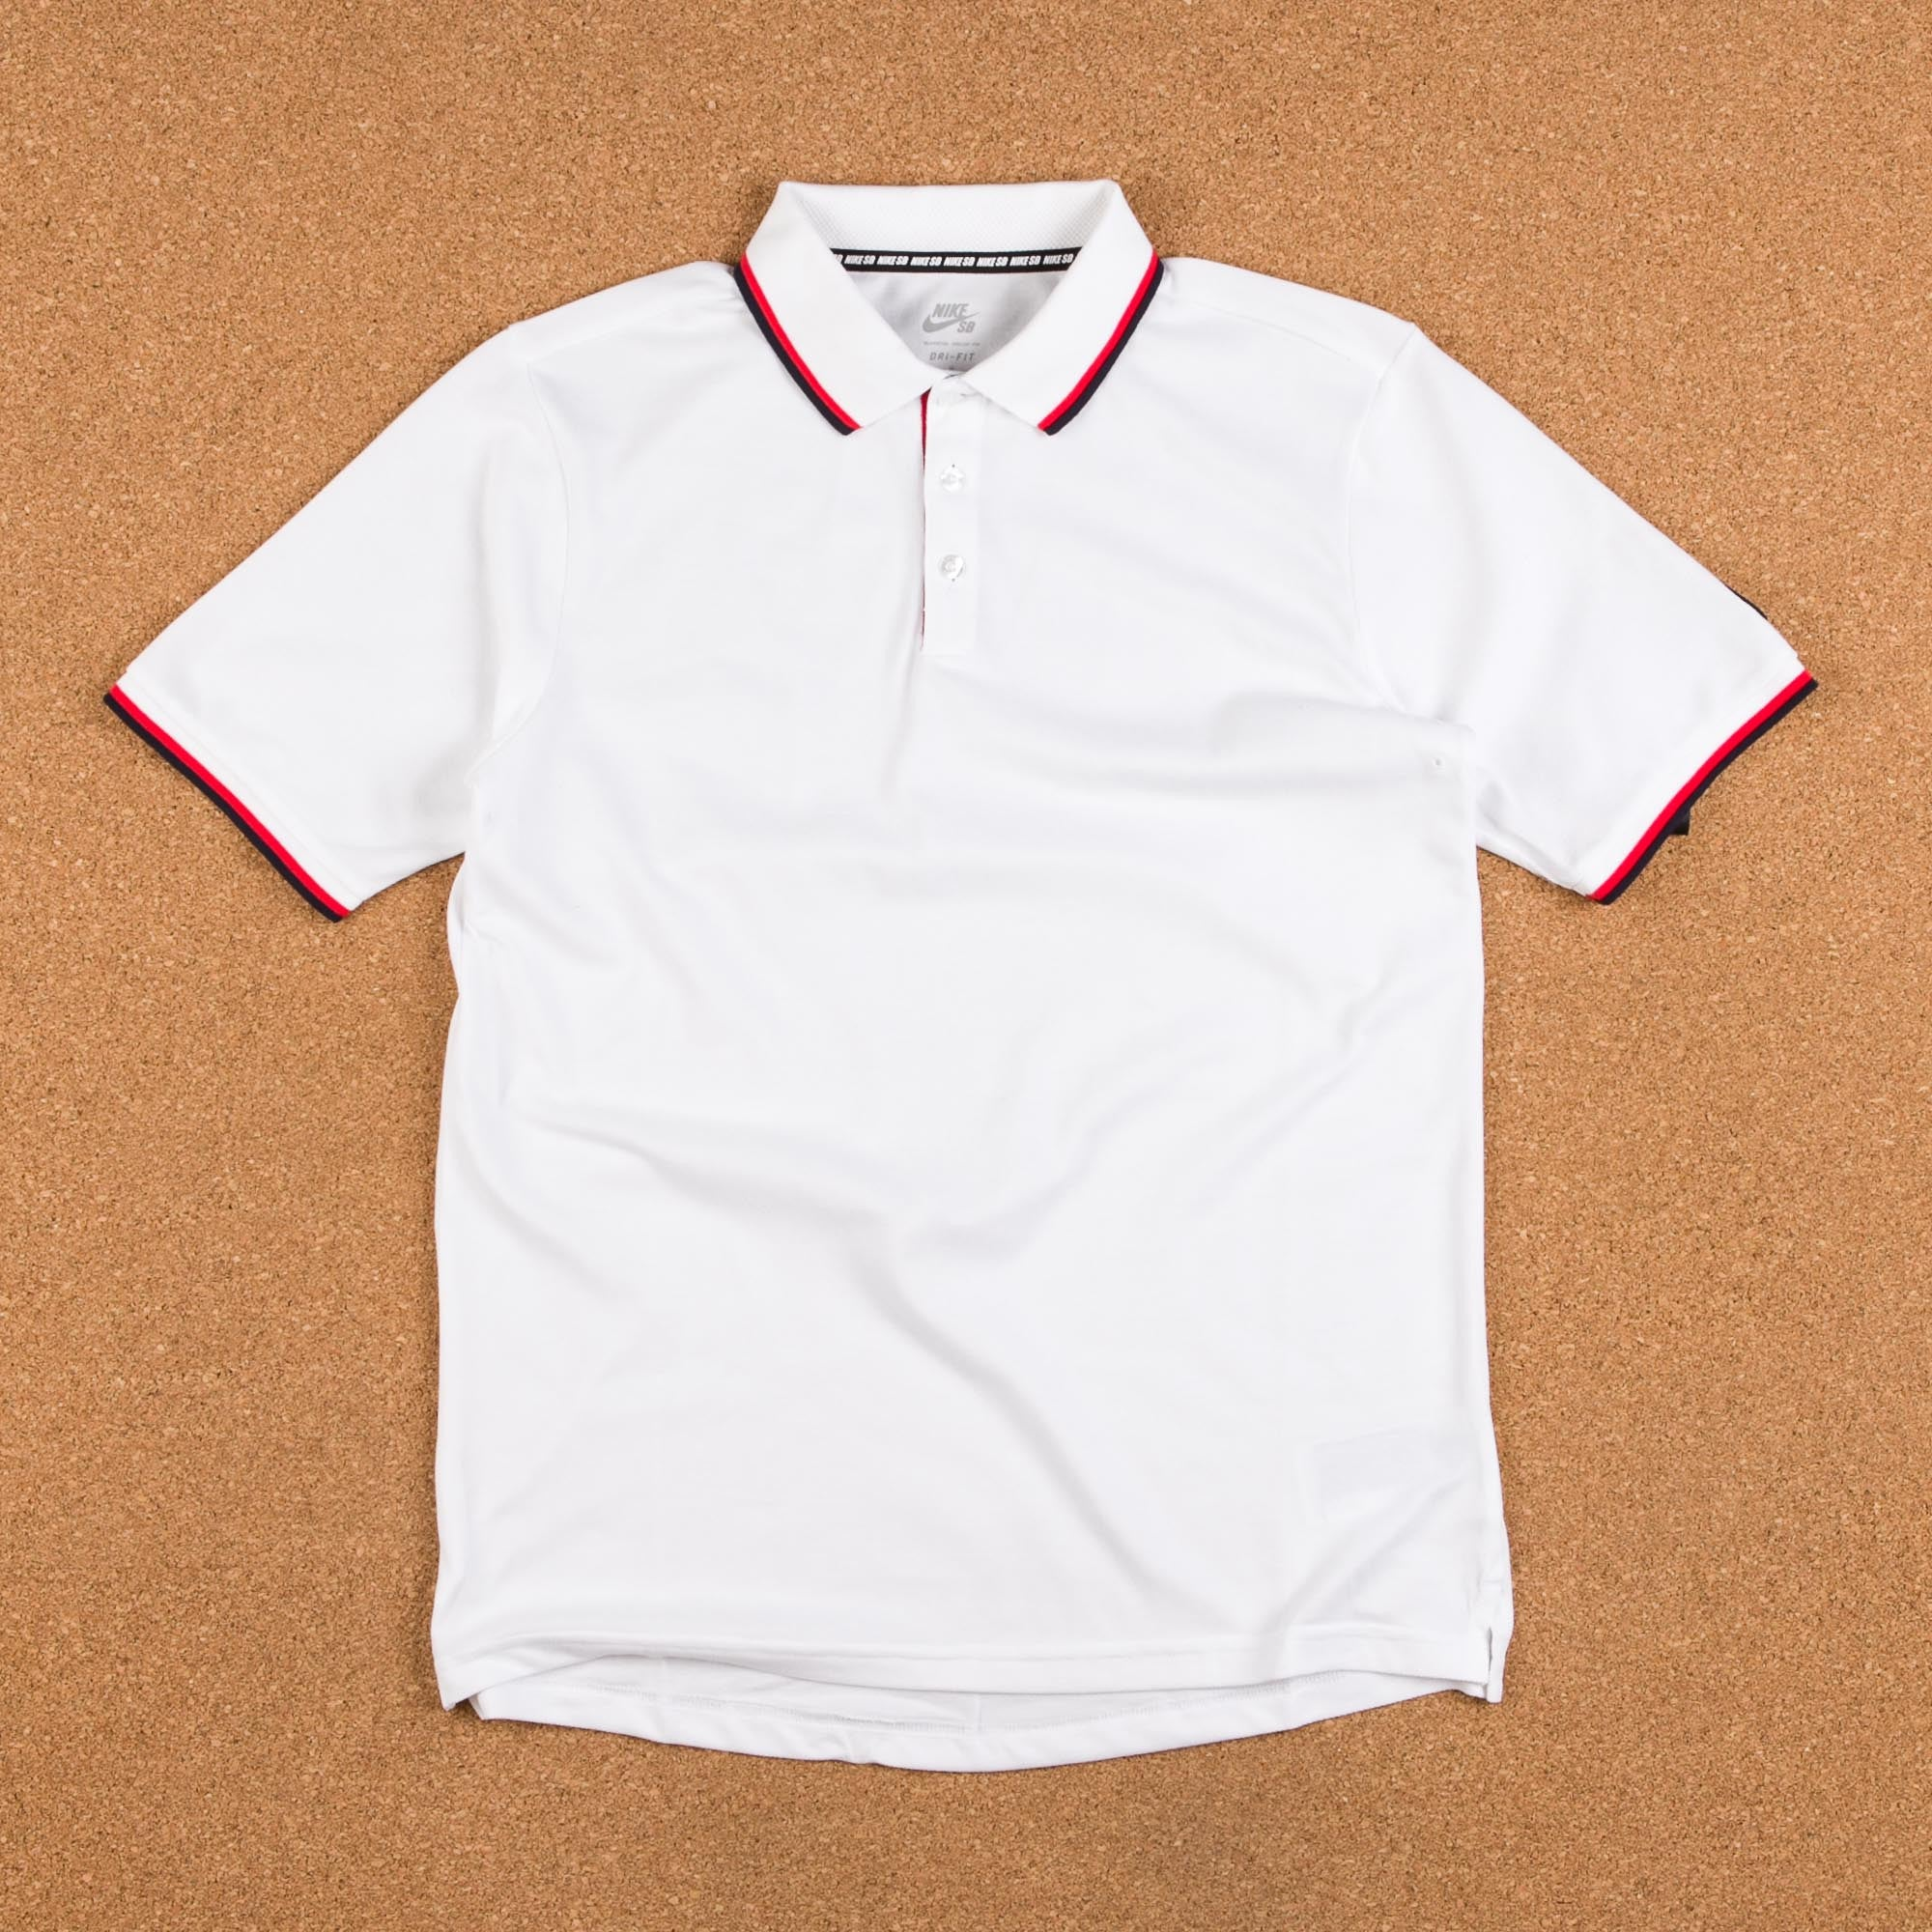 Nike SB x 917 Polo Shirt - White